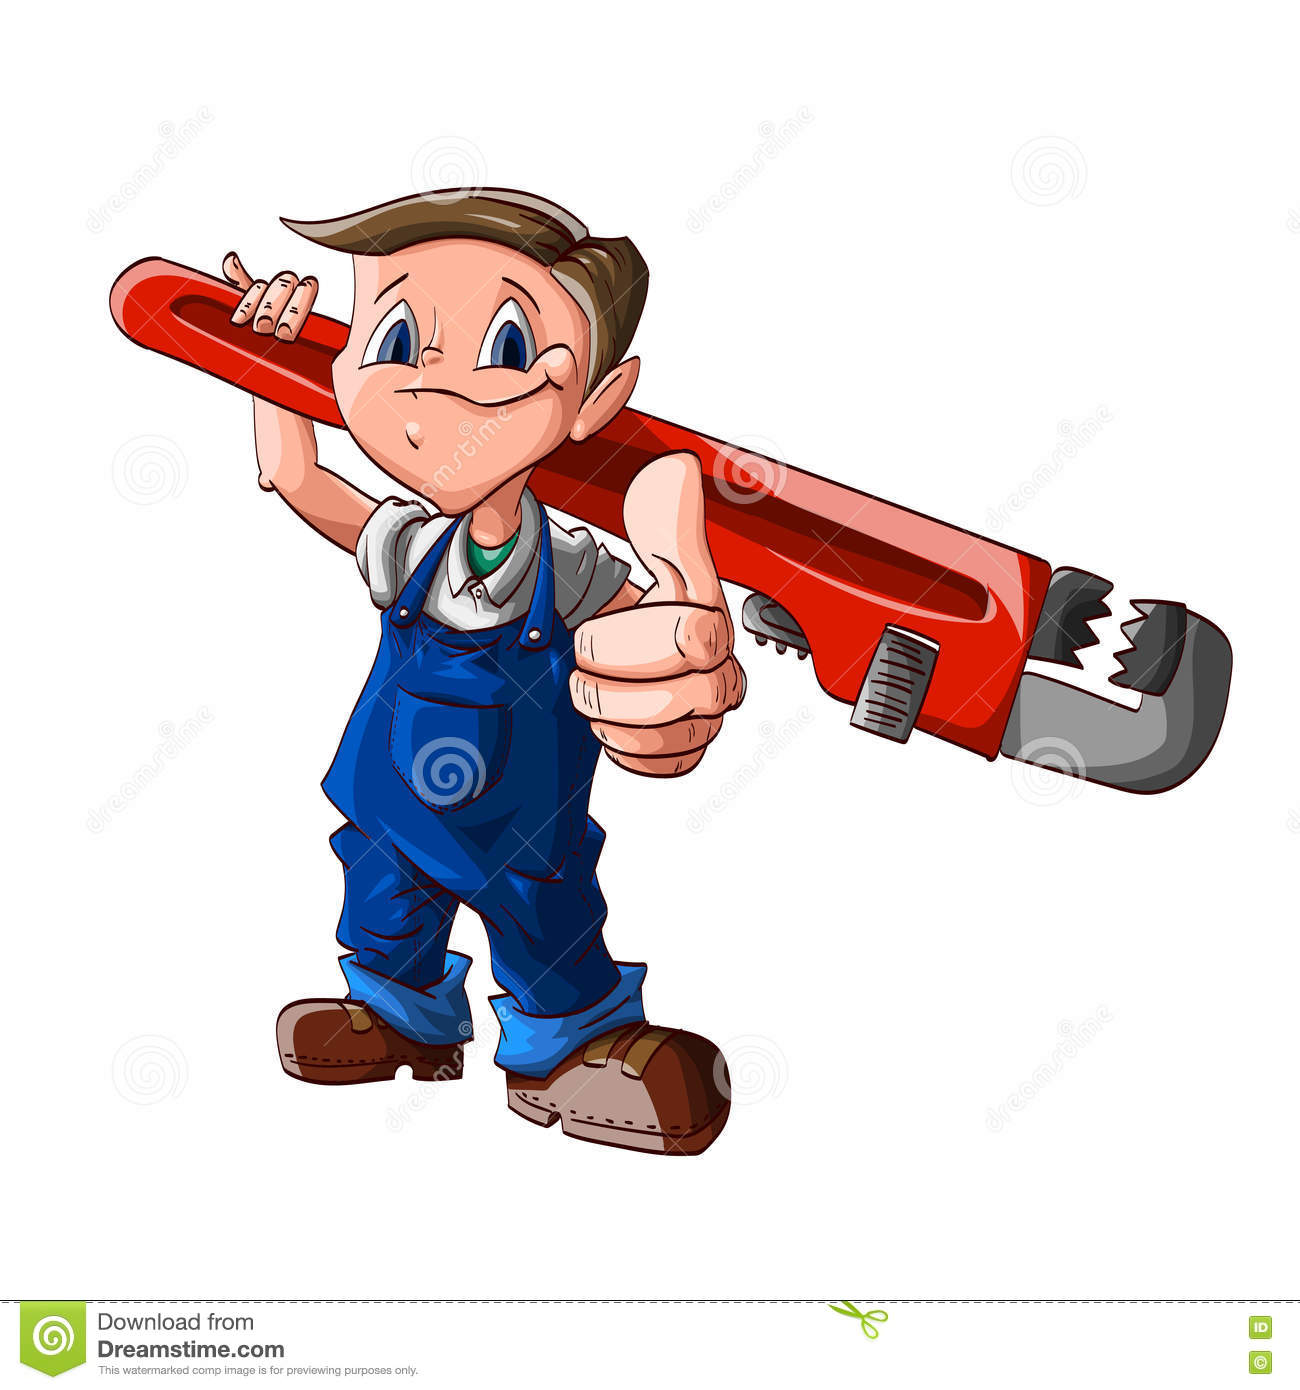 cartoon-plumber-boy-colorful-vector-illustration-cute-huge-wrench-his-shoulder-blue-jumpsuit-white-shirt-78080996.jpg